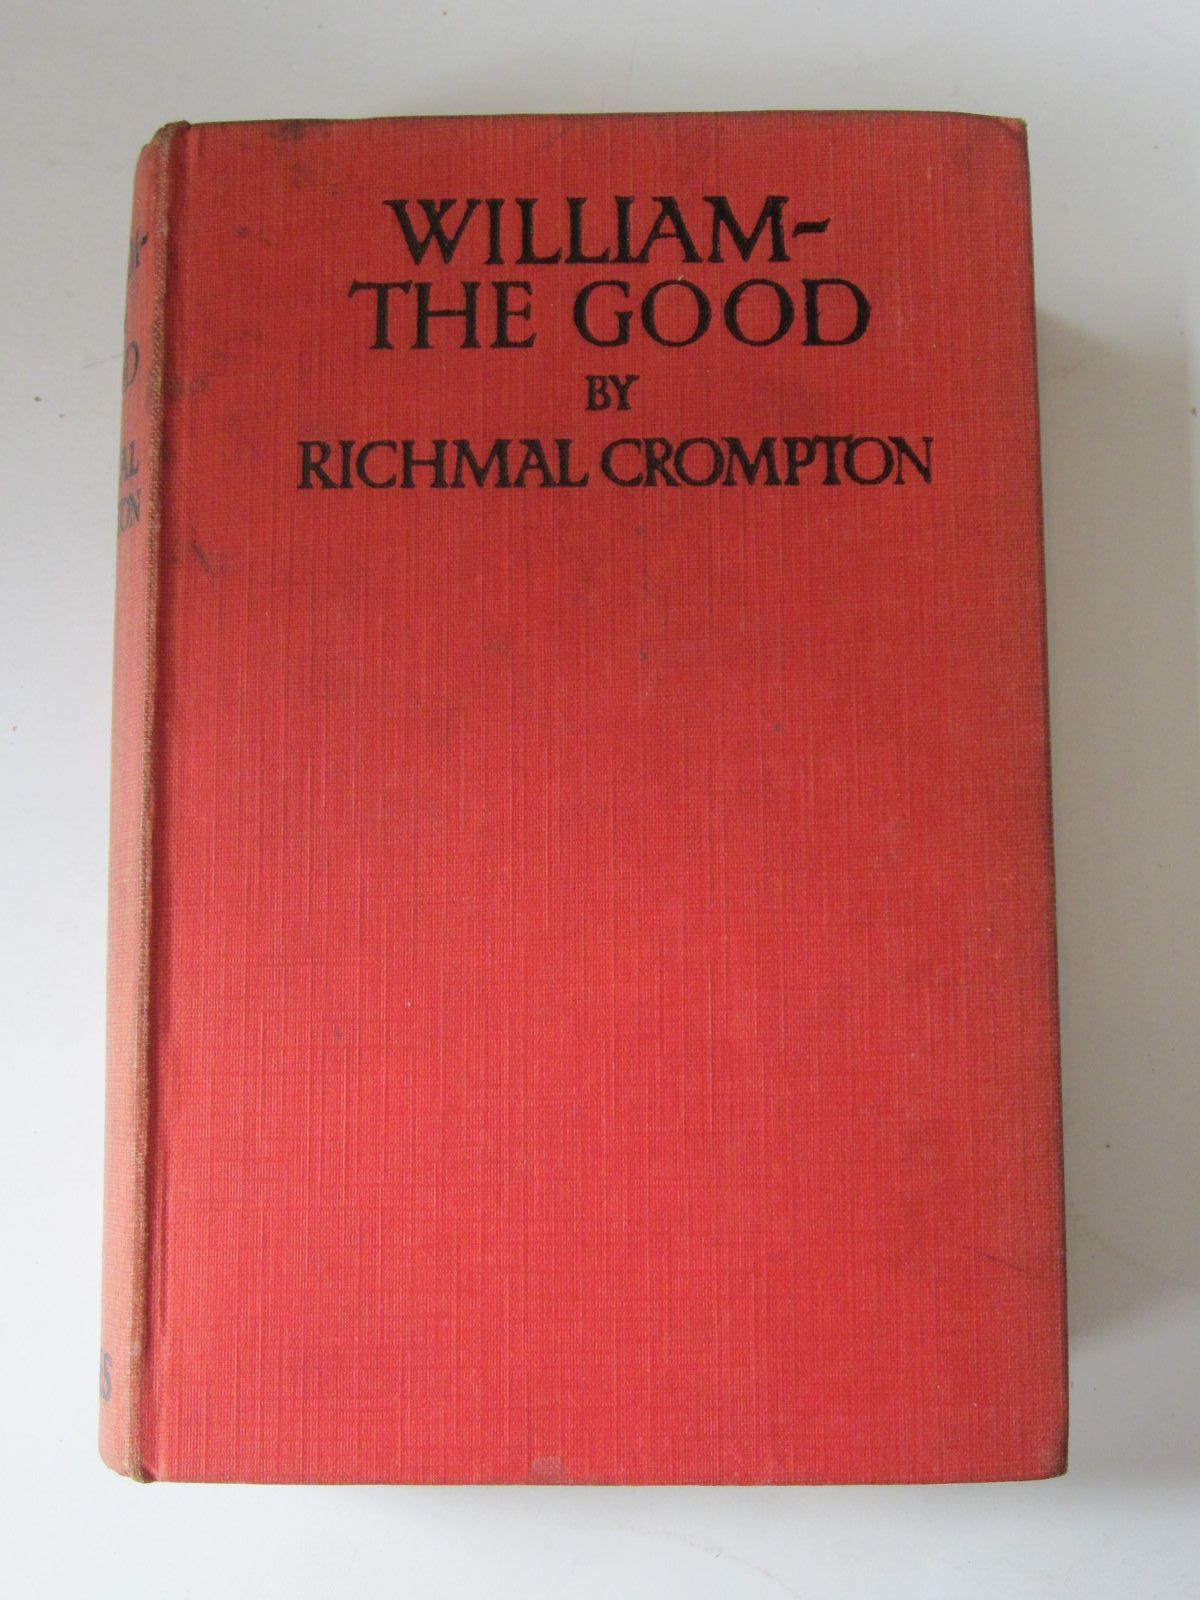 Photo of WILLIAM THE GOOD written by Crompton, Richmal illustrated by Henry, Thomas published by George Newnes Limited (STOCK CODE: 1308453)  for sale by Stella & Rose's Books